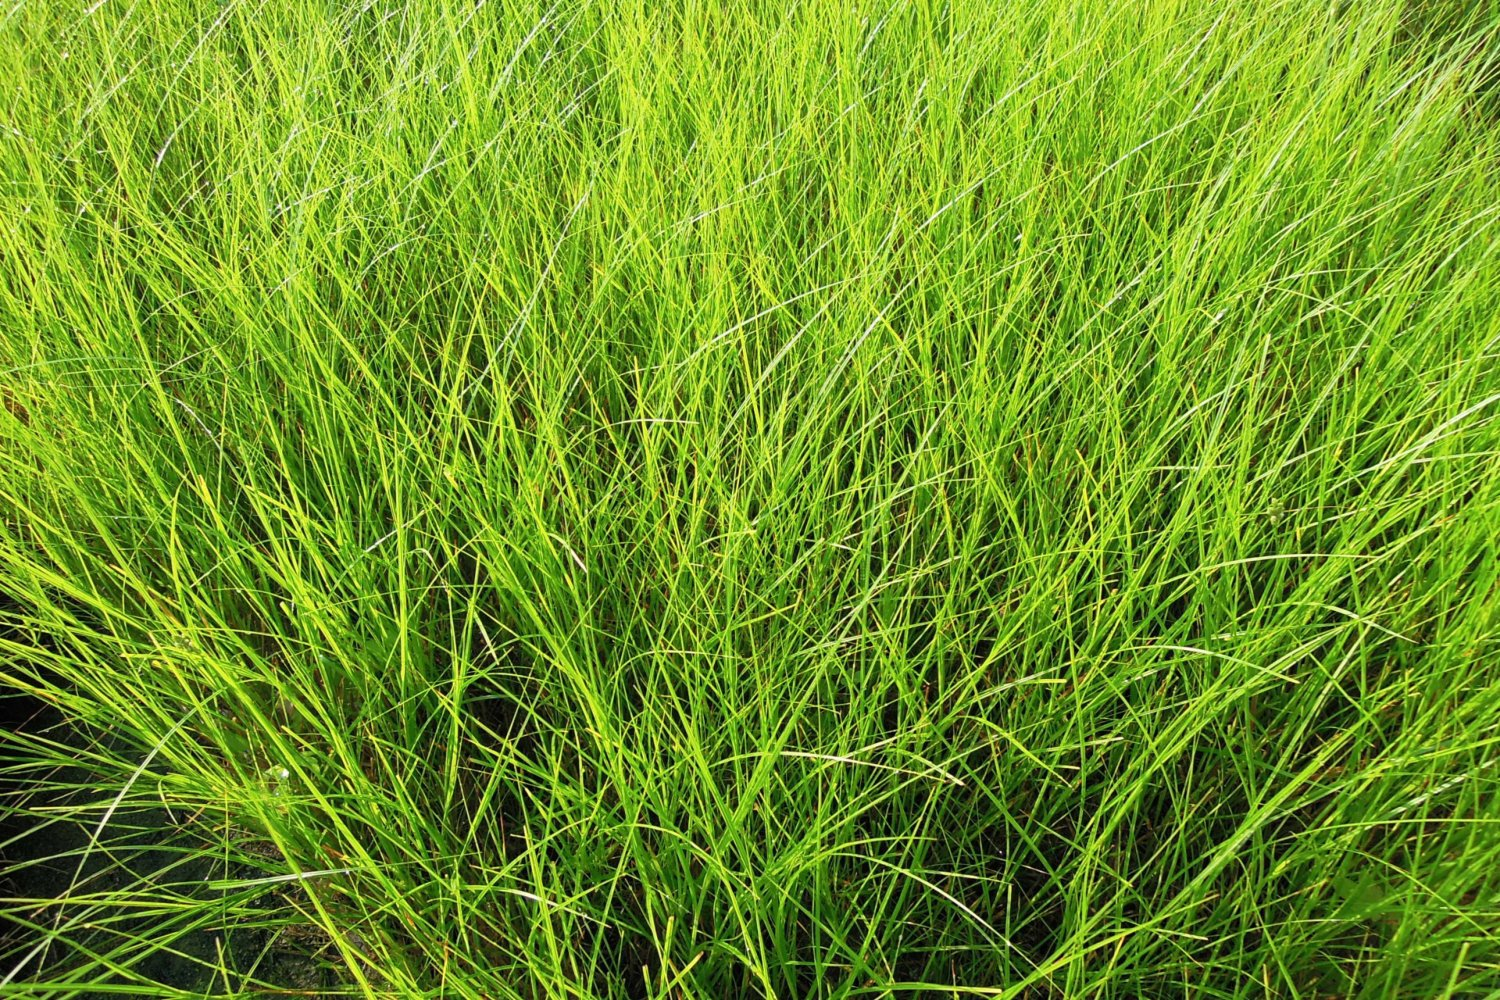 A large mass of cordgrass is also known as spartina.